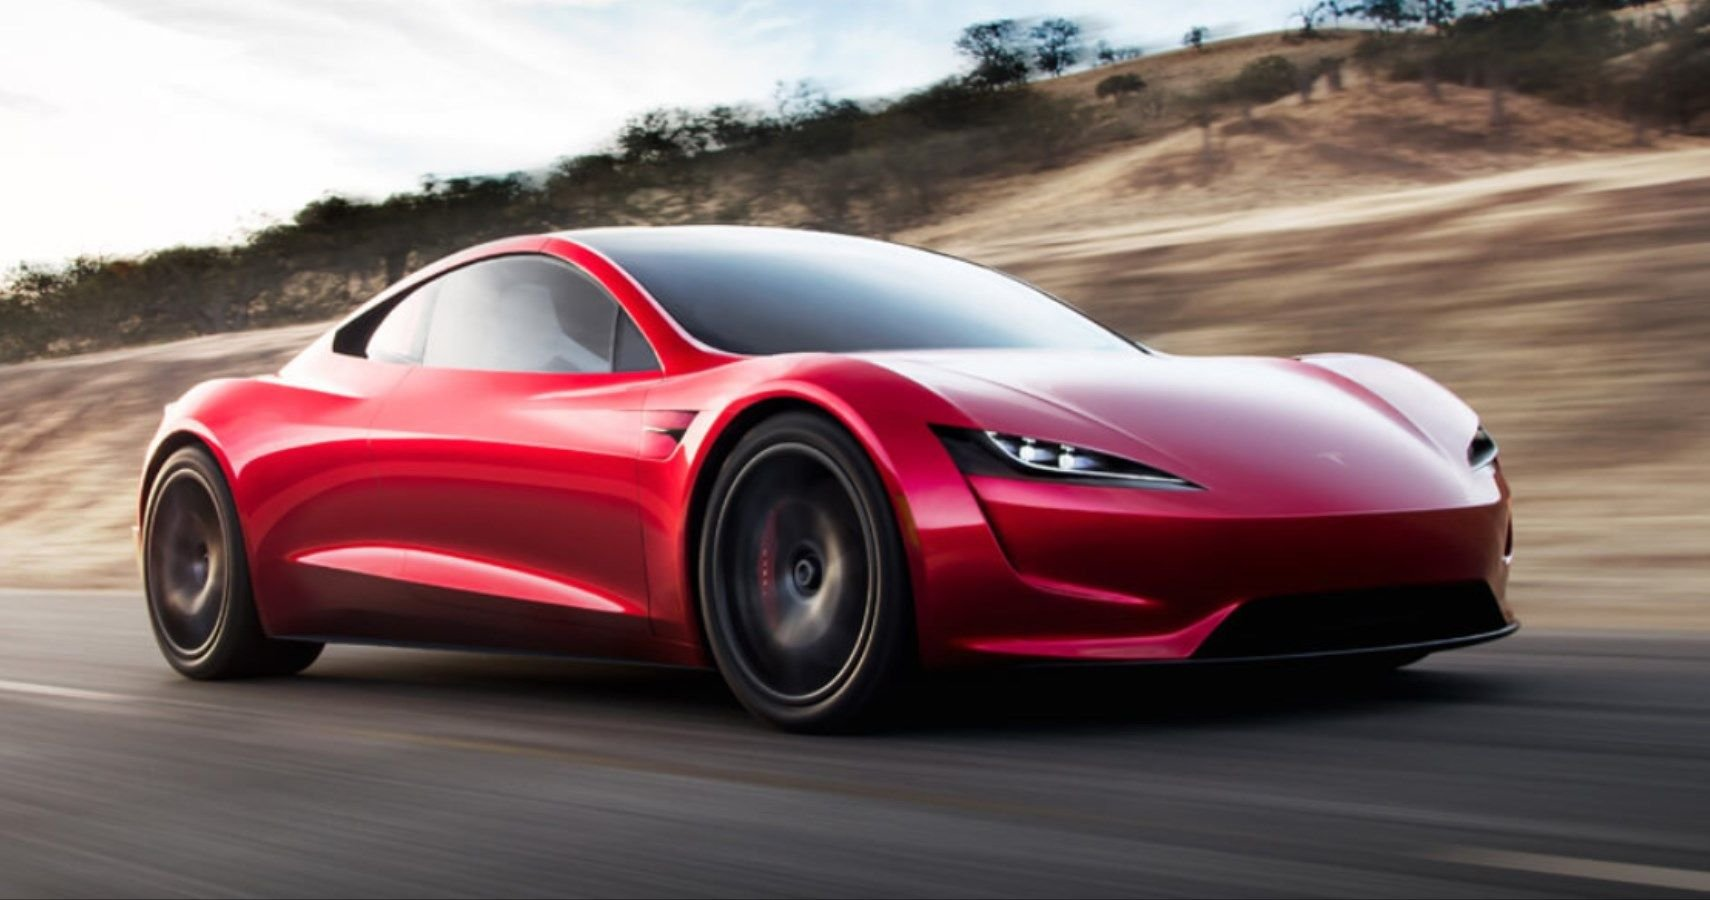 Tesla's Model X Roadster Will Do 0-60 In Just Over A Second Says Musk